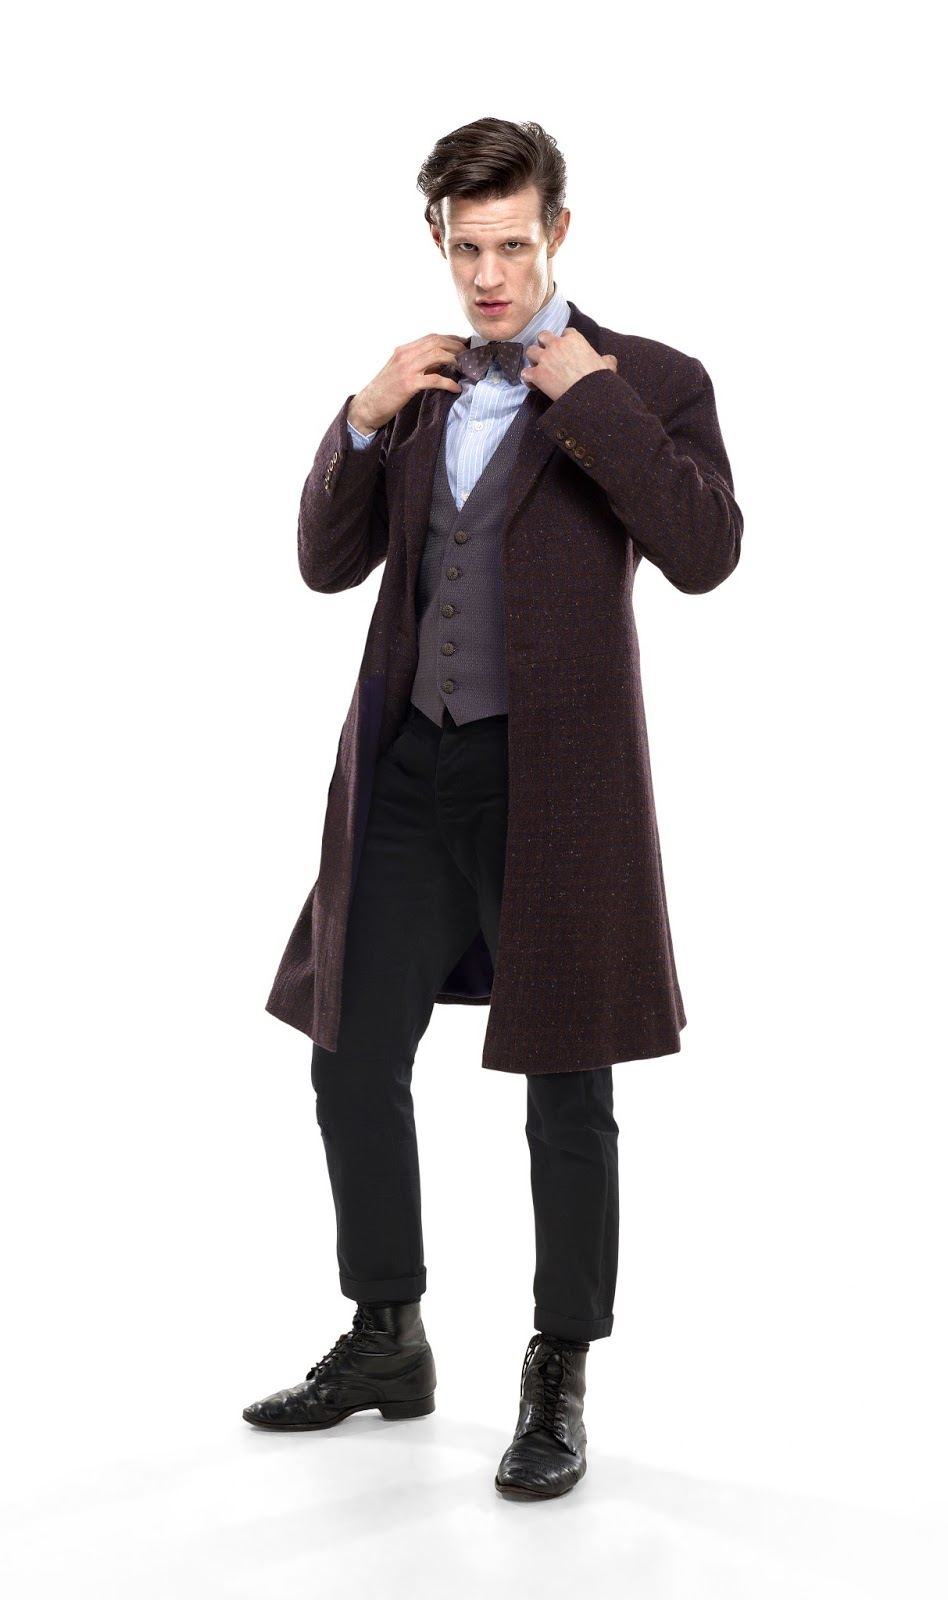 11th Doctor Outfits :) - Doctor Who Photo (35669481) - Fanpop